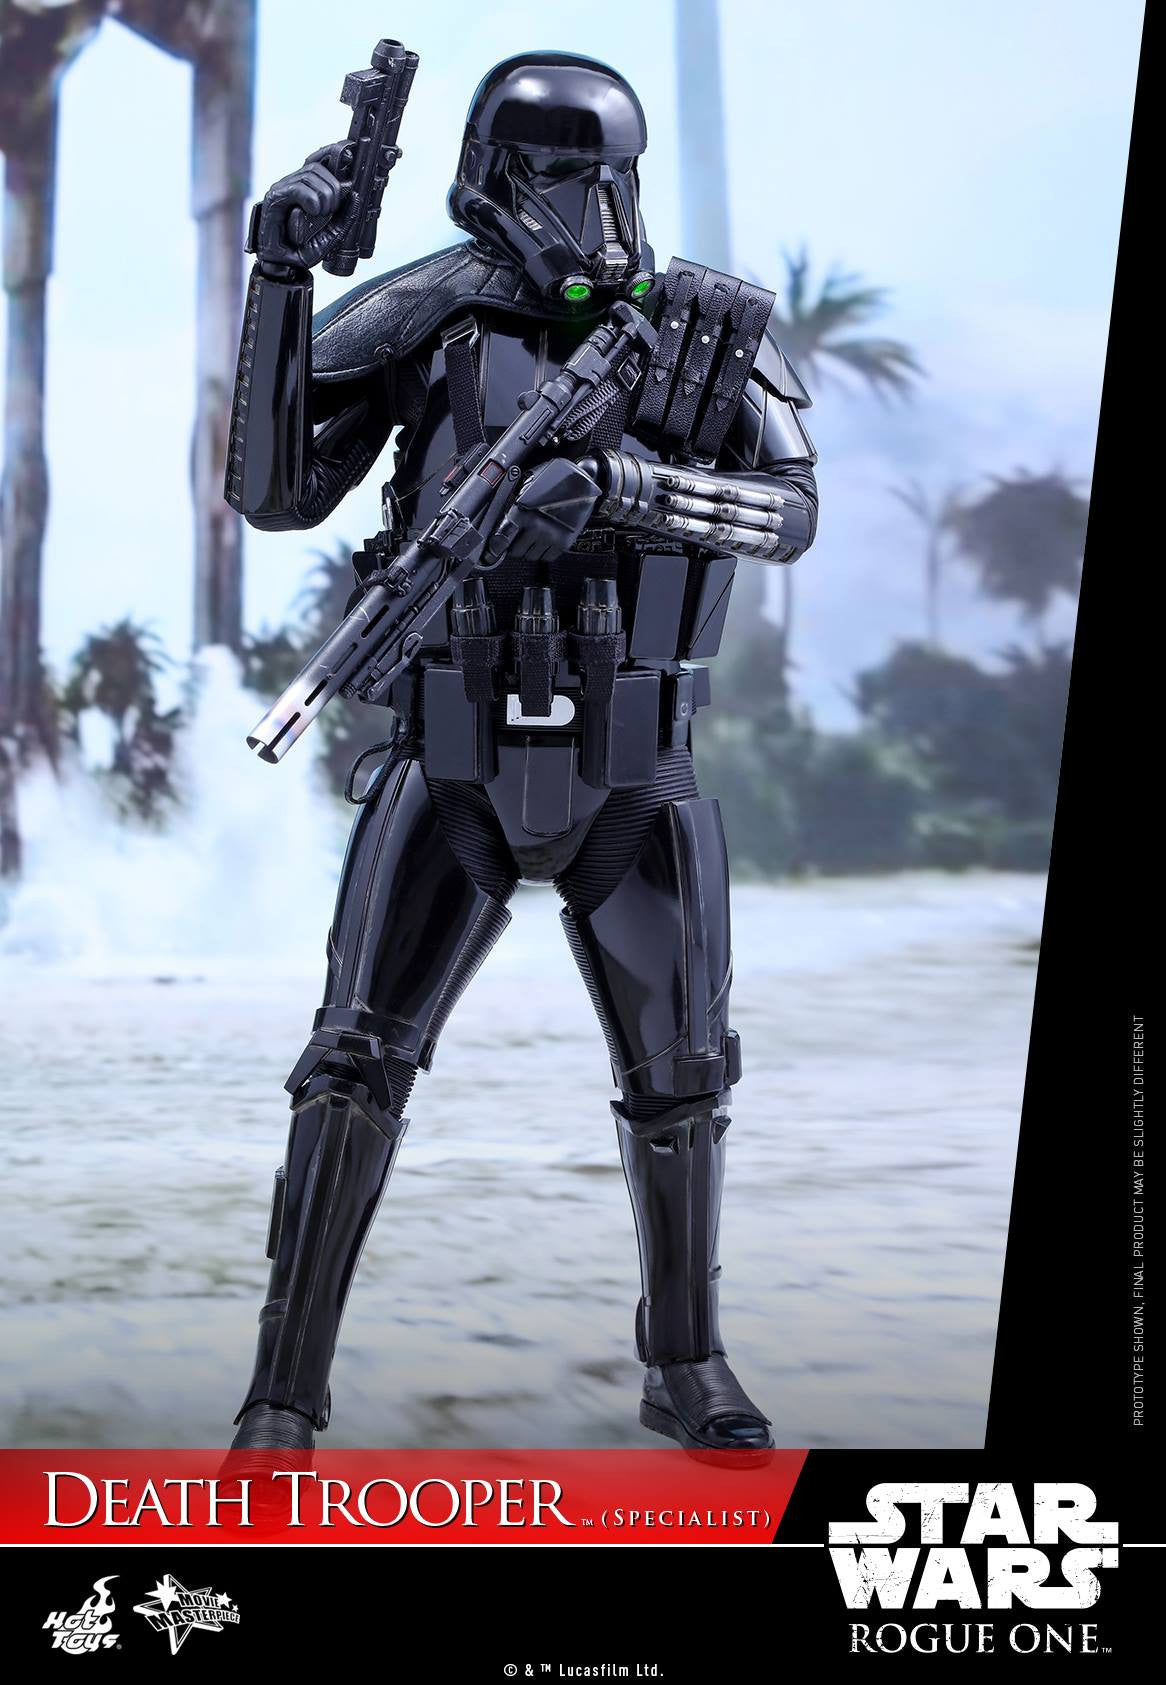 Hot Toys - MMS385 - Rogue One: A Star Wars Story - Death Trooper (Specialist) - Marvelous Toys - 9